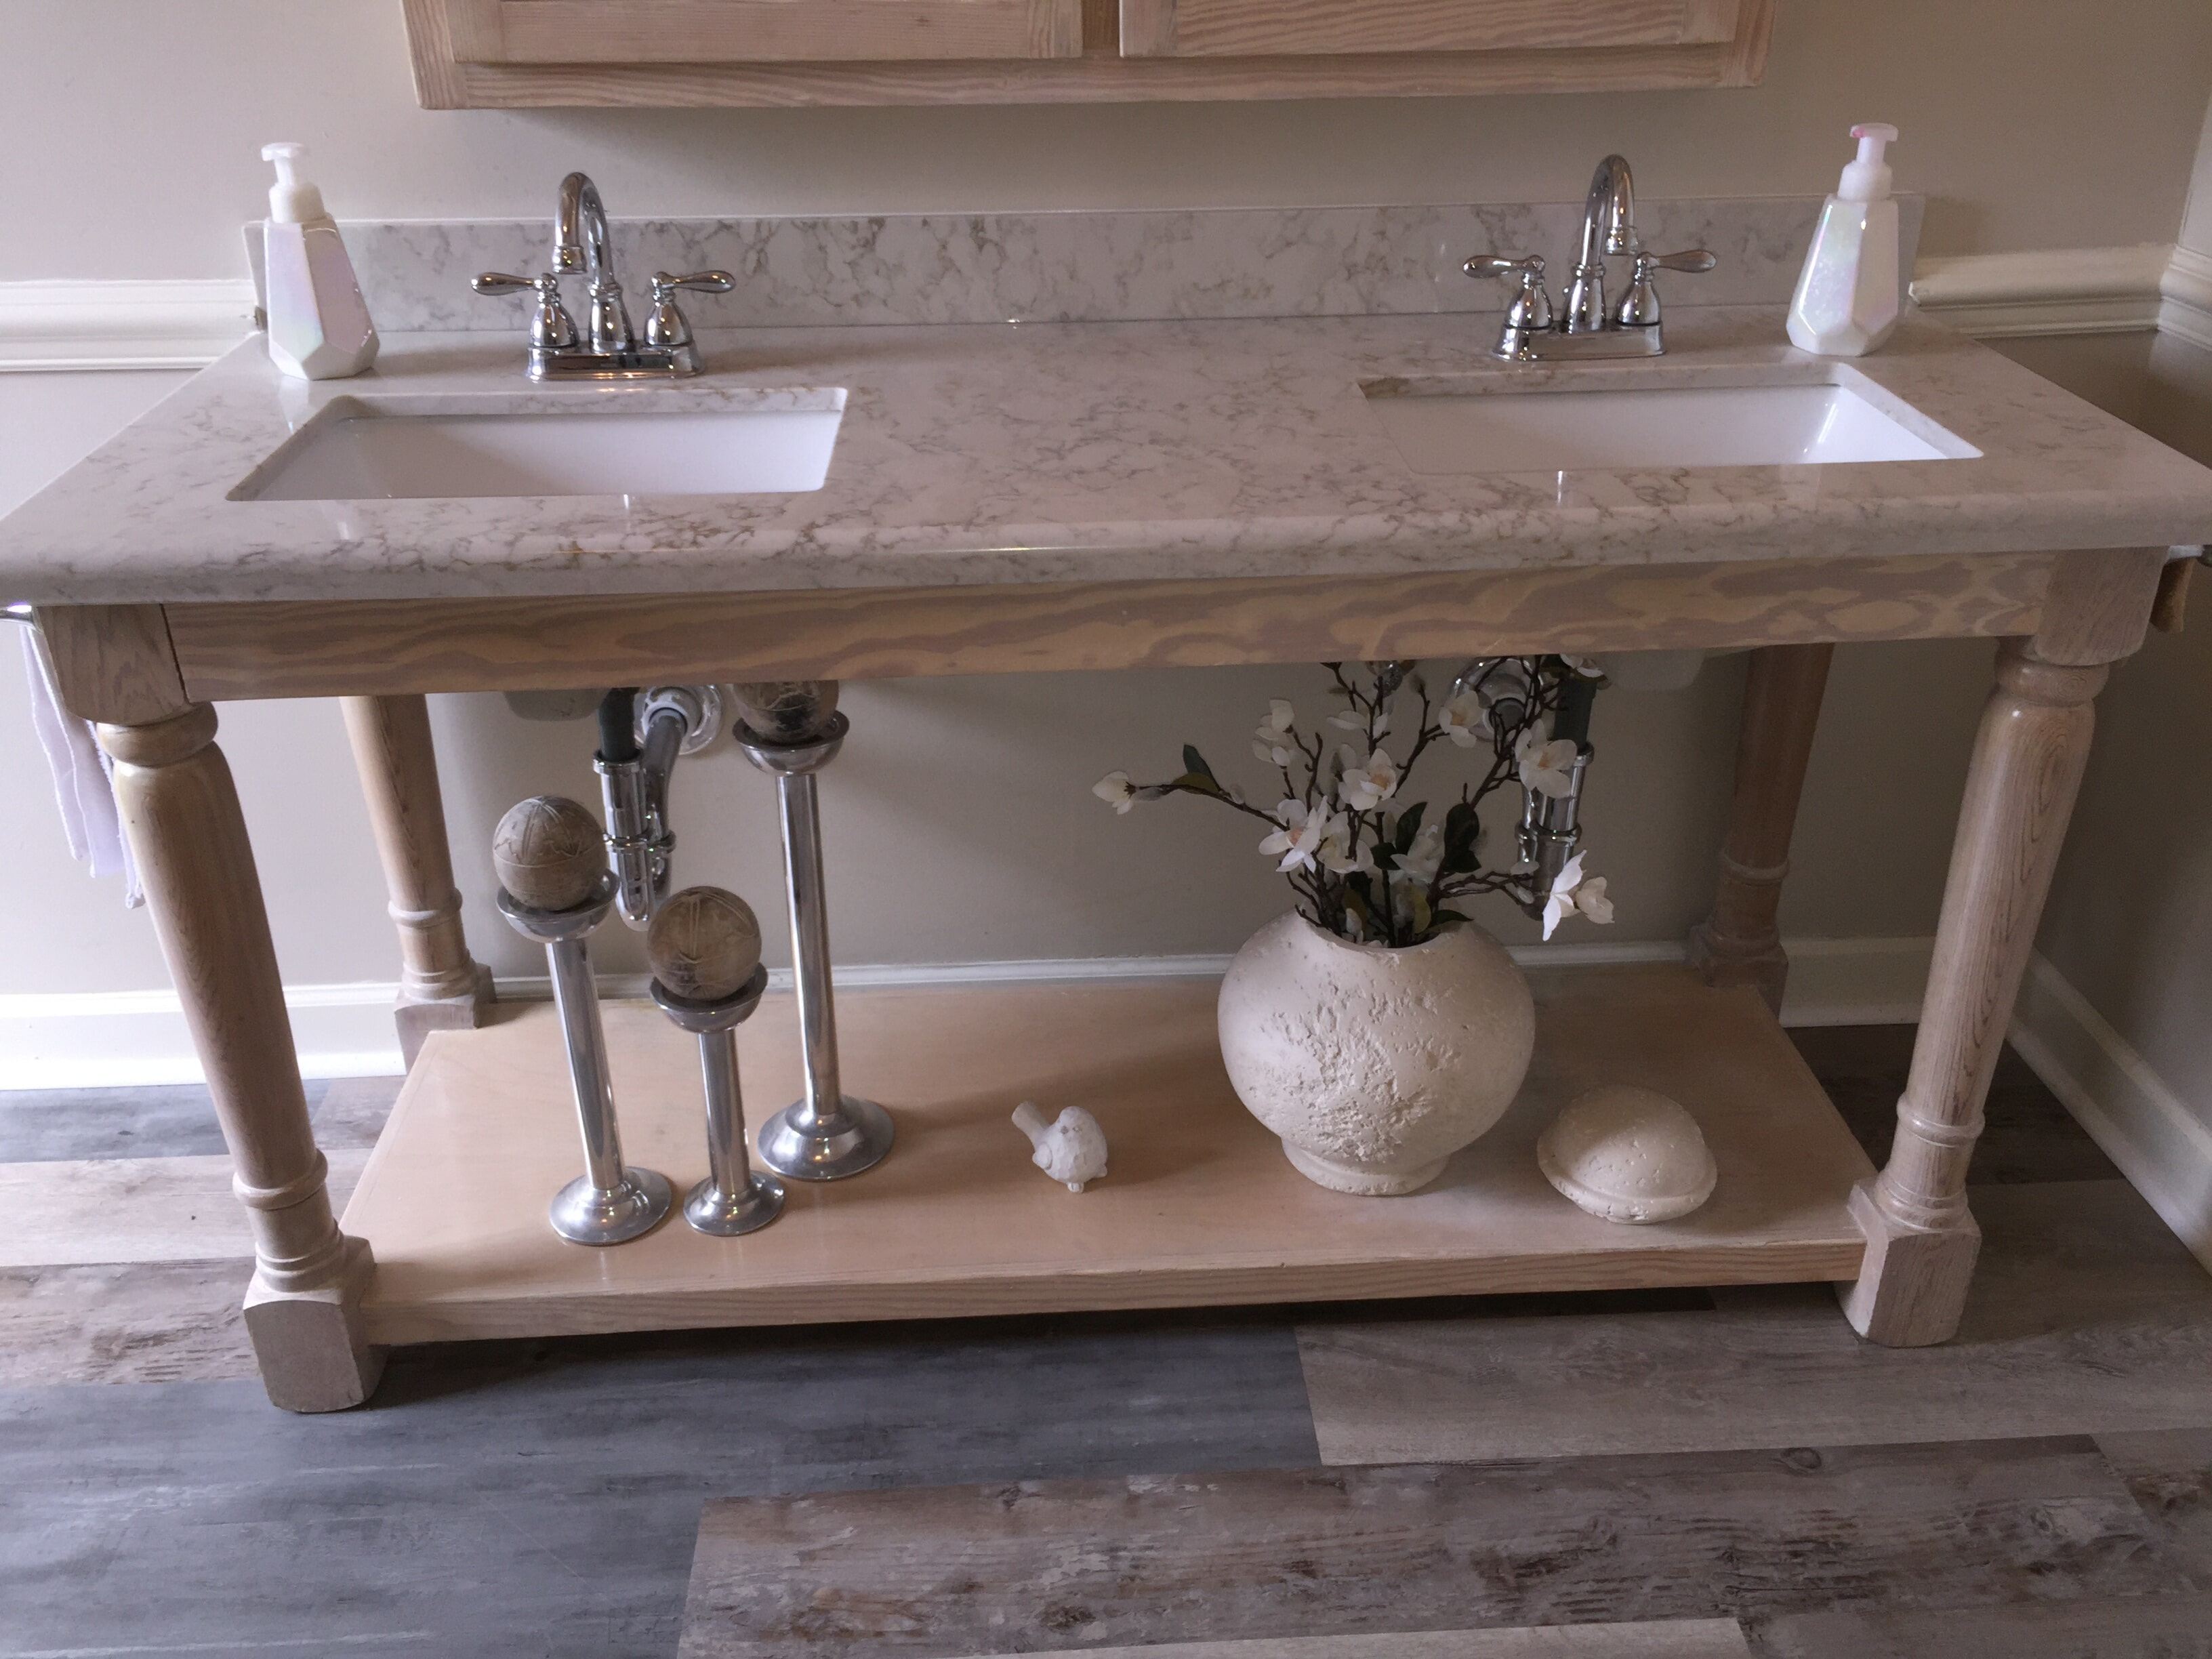 Luxury bathroom sinks in Bailey NC from Richie Ballance Flooring